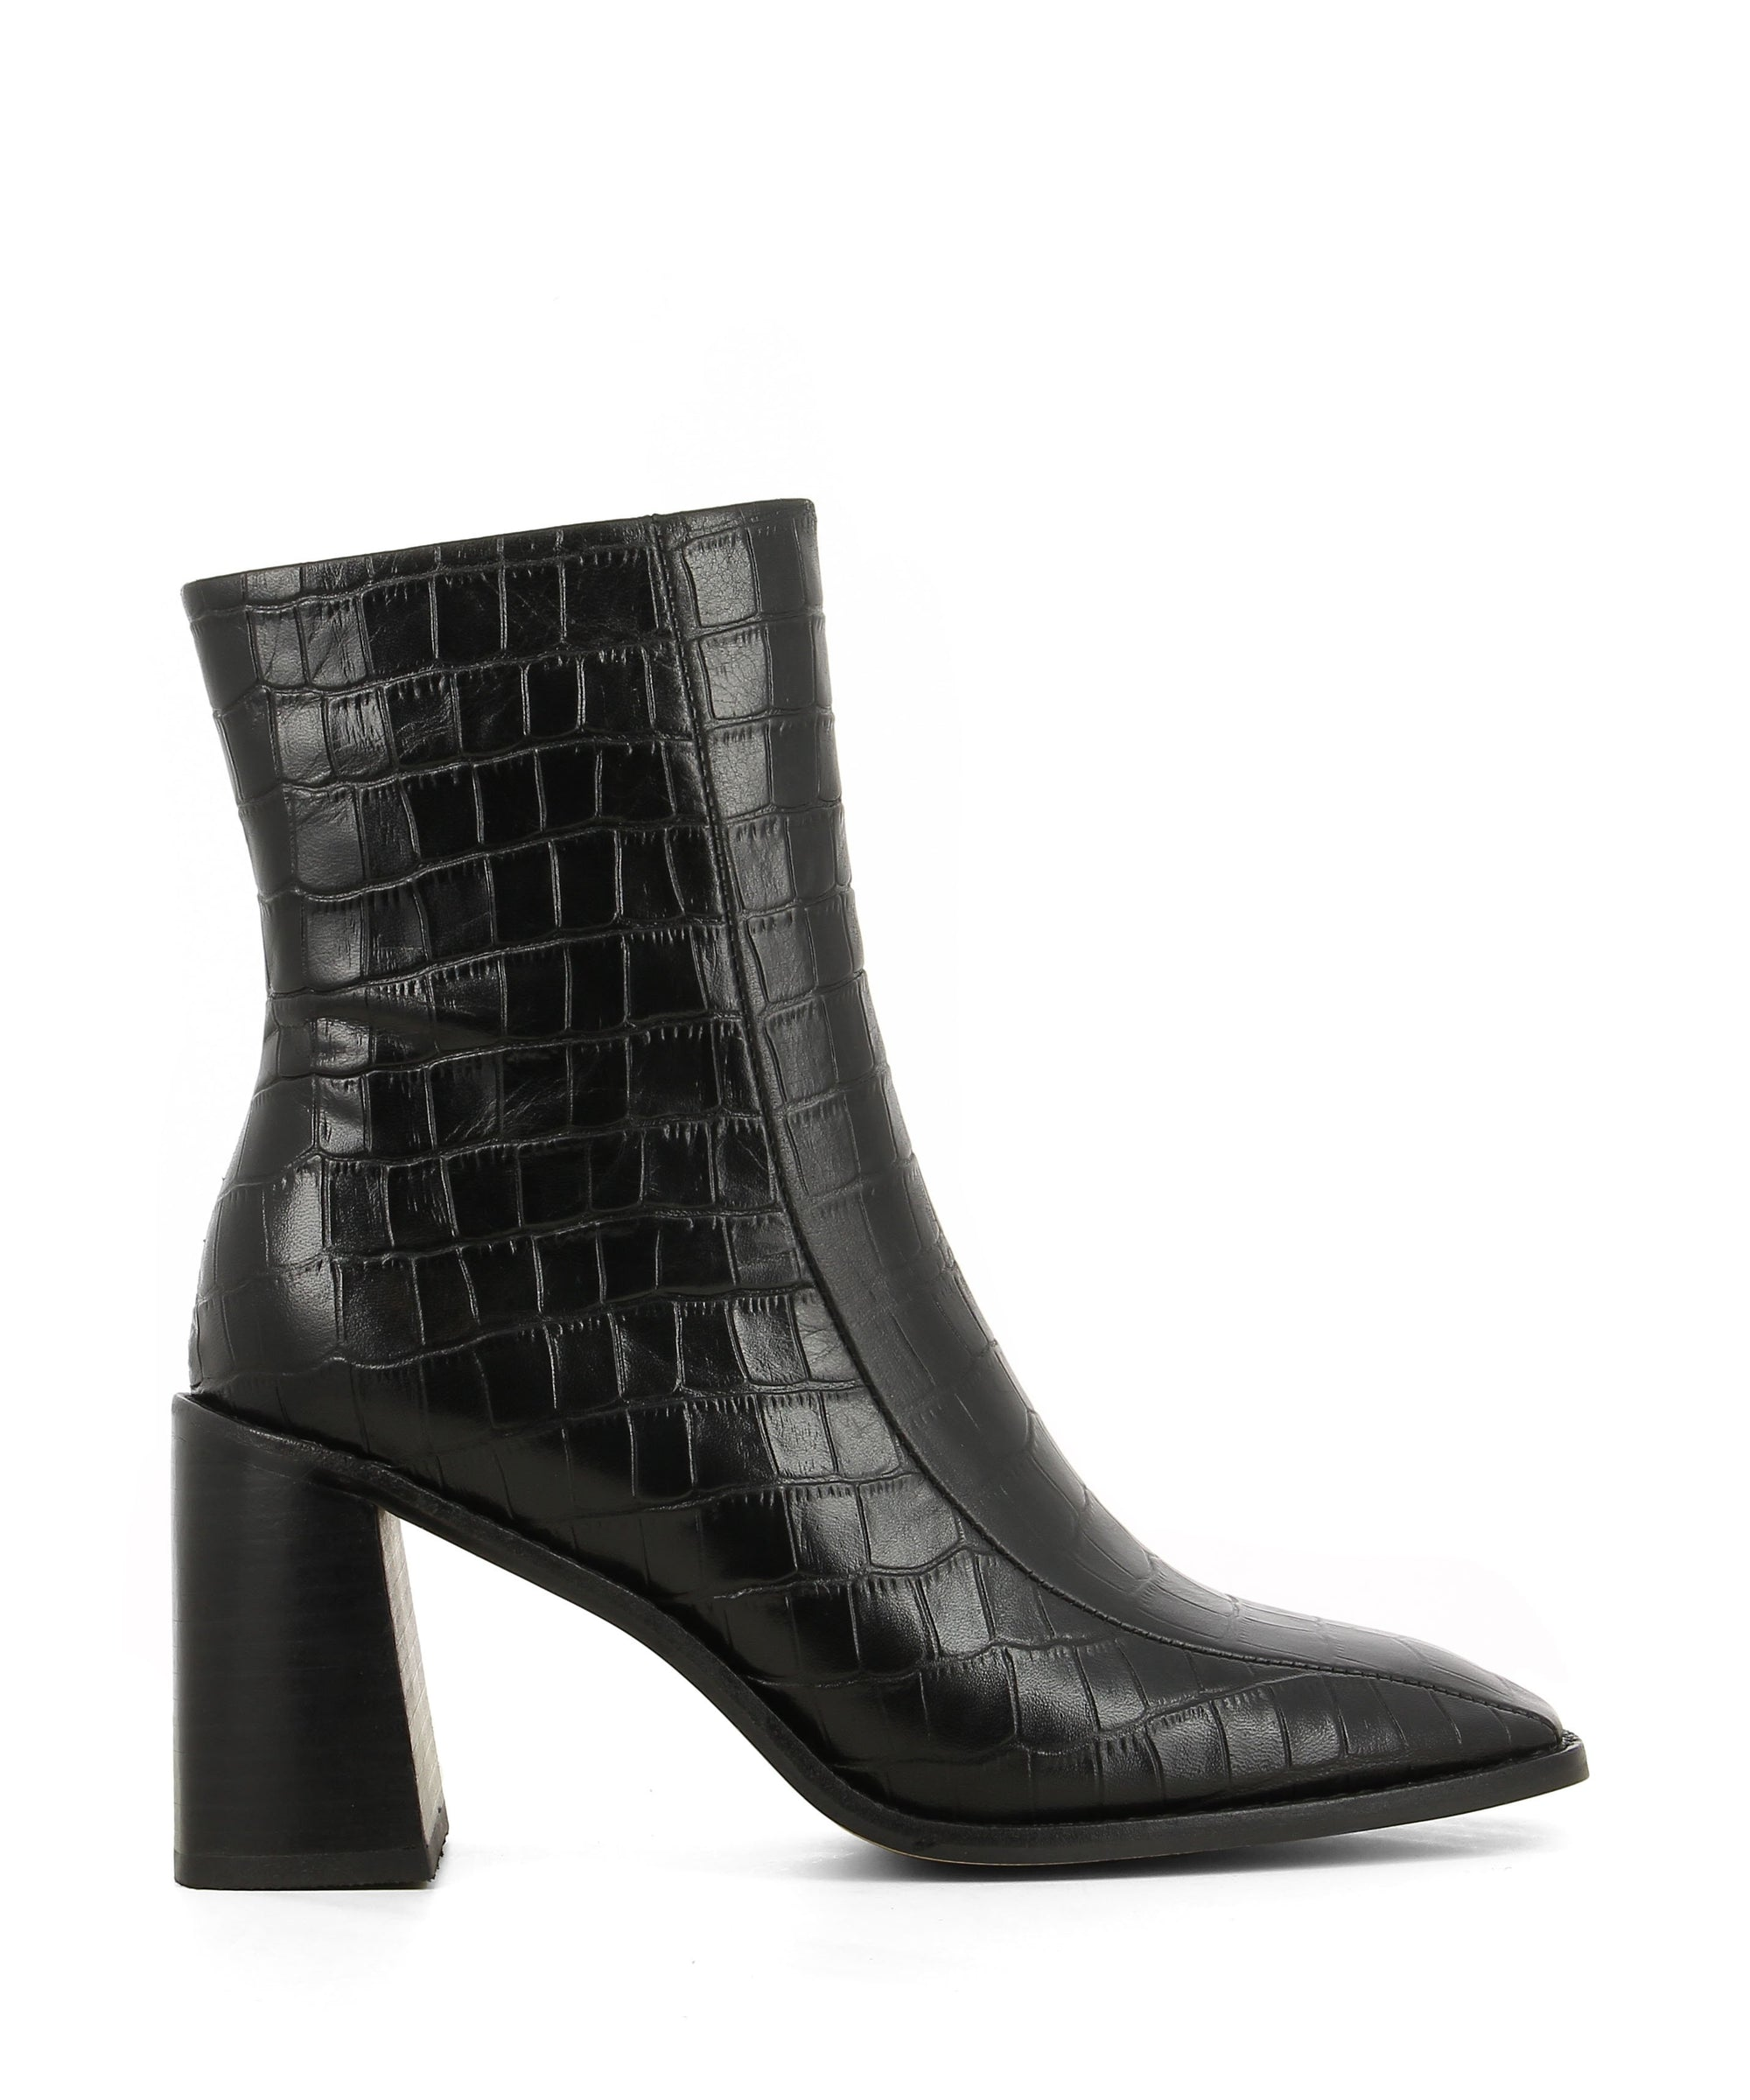 Black croc leather ankle boots that have a zipper fastening and feature a 7.5cm block heel and a square toe by 2 Baia Vista.